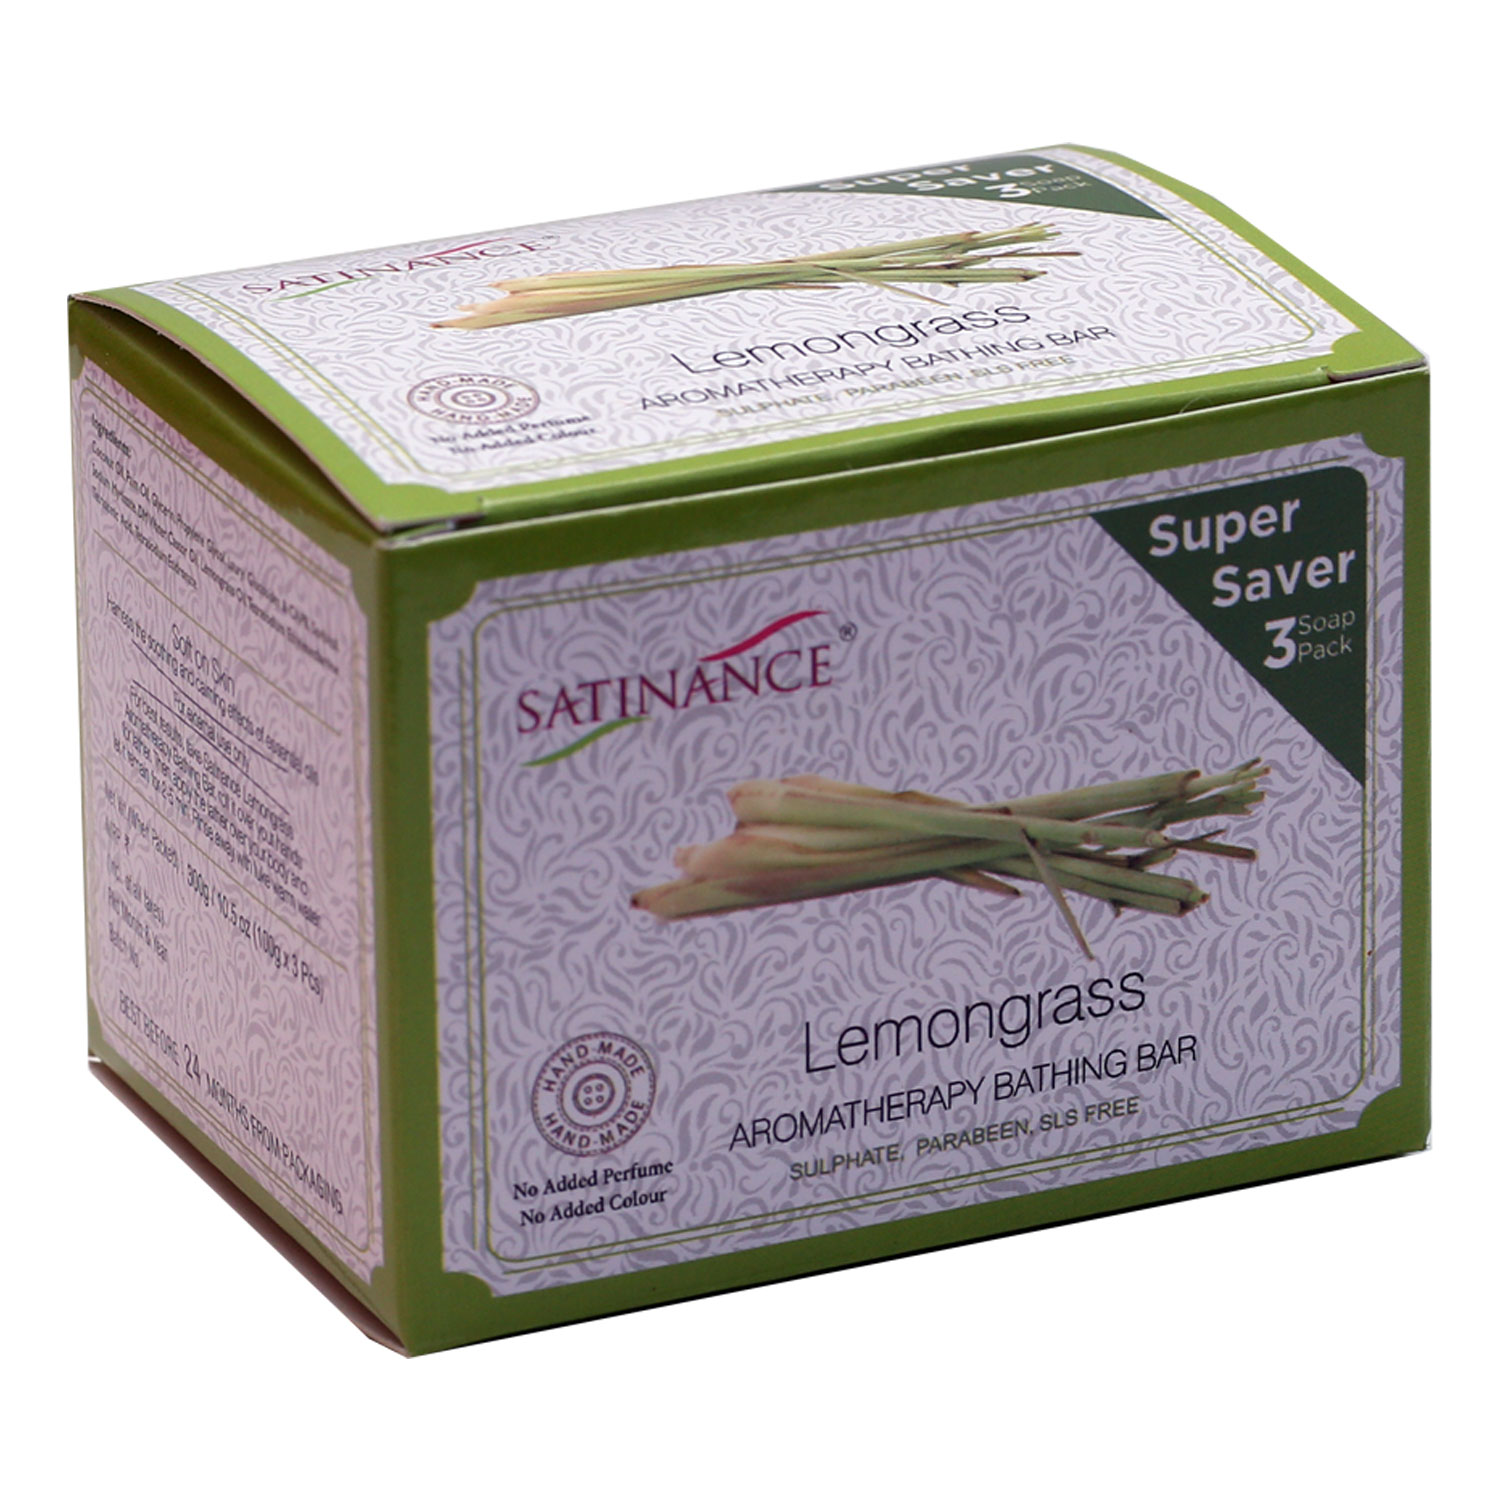 Lemongrass Aromatherapy Bathing Bar 300g (100g*3) - Super Saver Pack